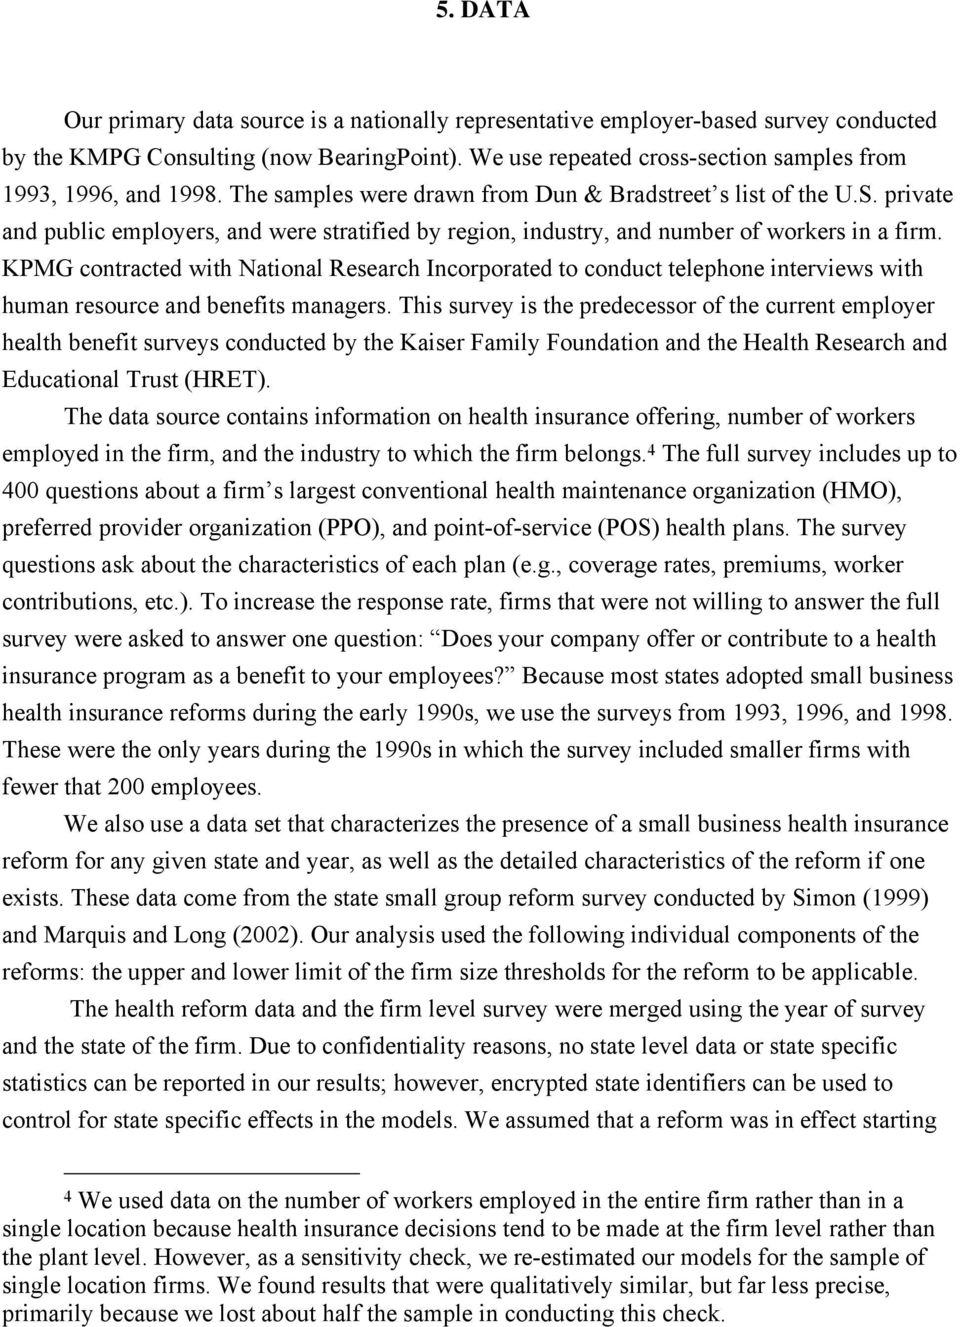 private and public employers, and were stratified by region, industry, and number of workers in a firm.